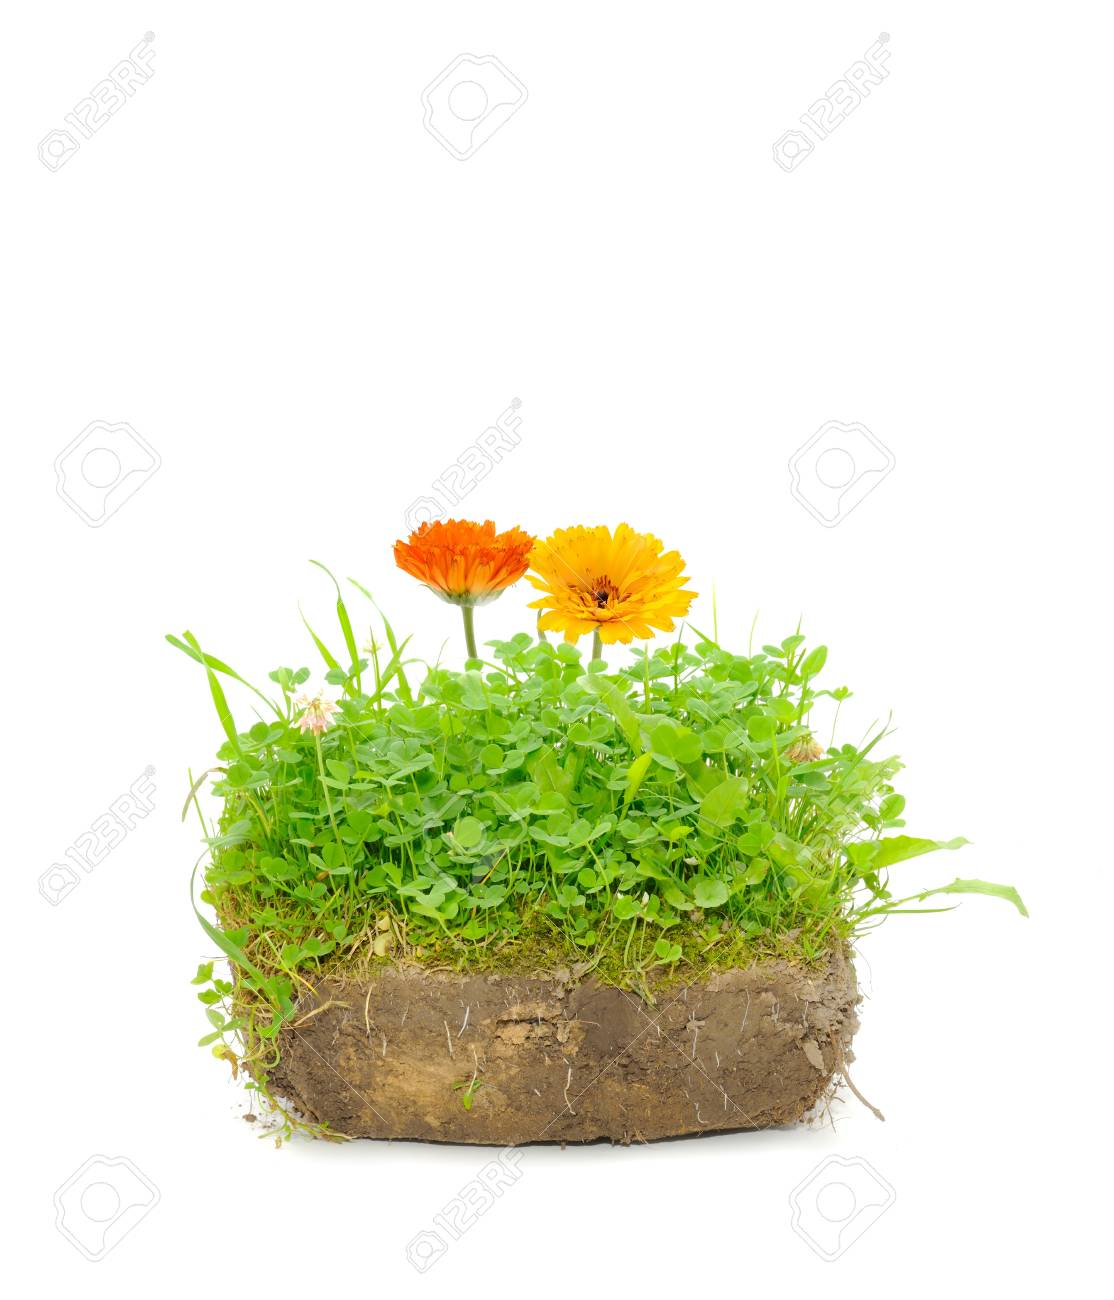 Green Plants and Calendula Flowers in Soil Isolated on White Background Stock Photo - 9999037